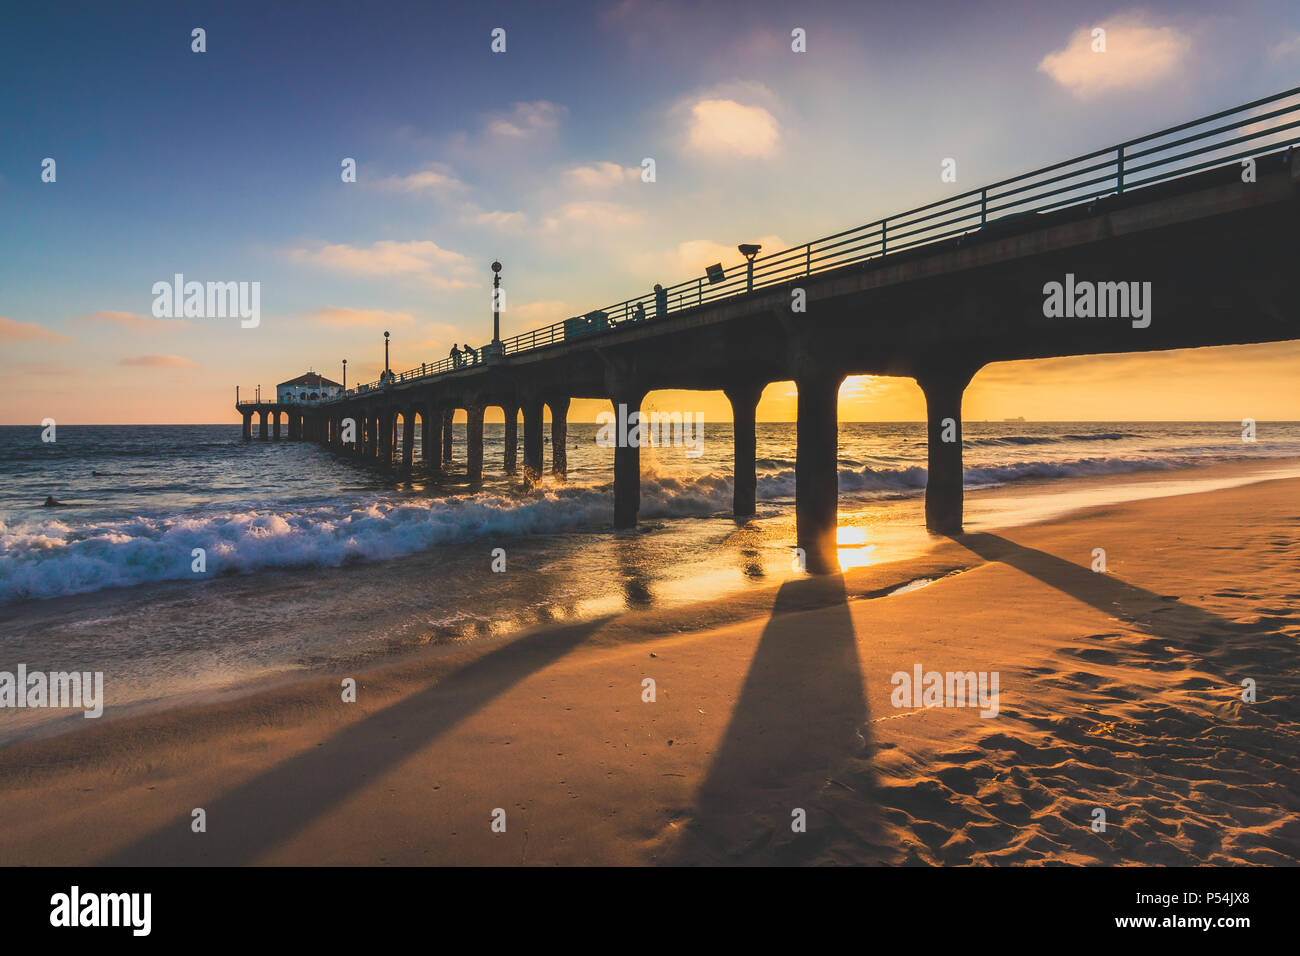 Colorful sky and clouds over Manhattan Beach Pier at sunset with long shadows cast on the beach, Manhattan Beach, California - Stock Image